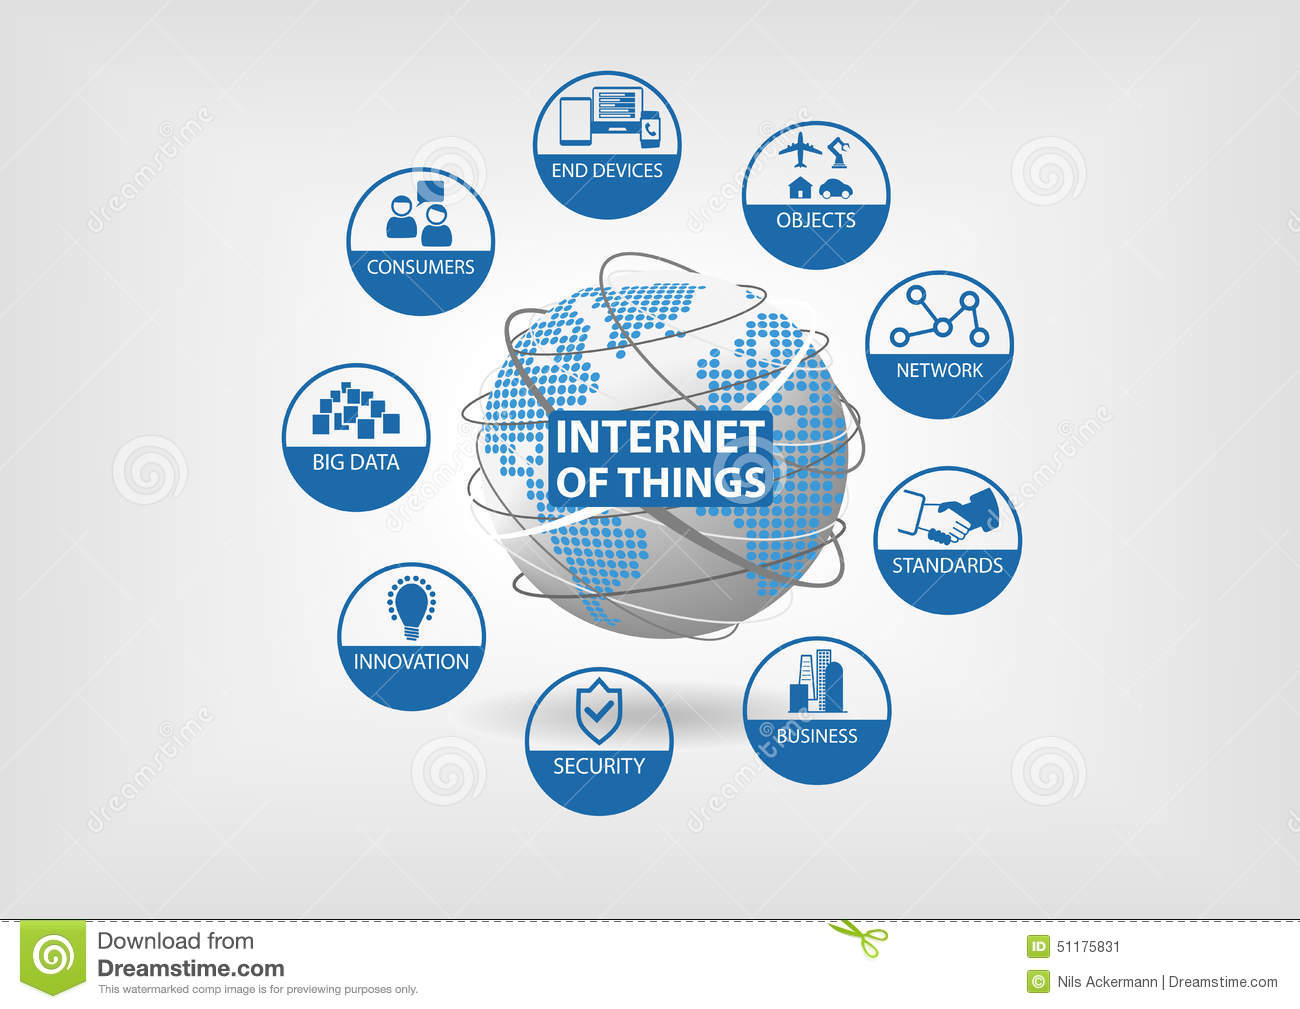 Internet Of Things (IoT) Concept With Icons Of End Devices, Objects